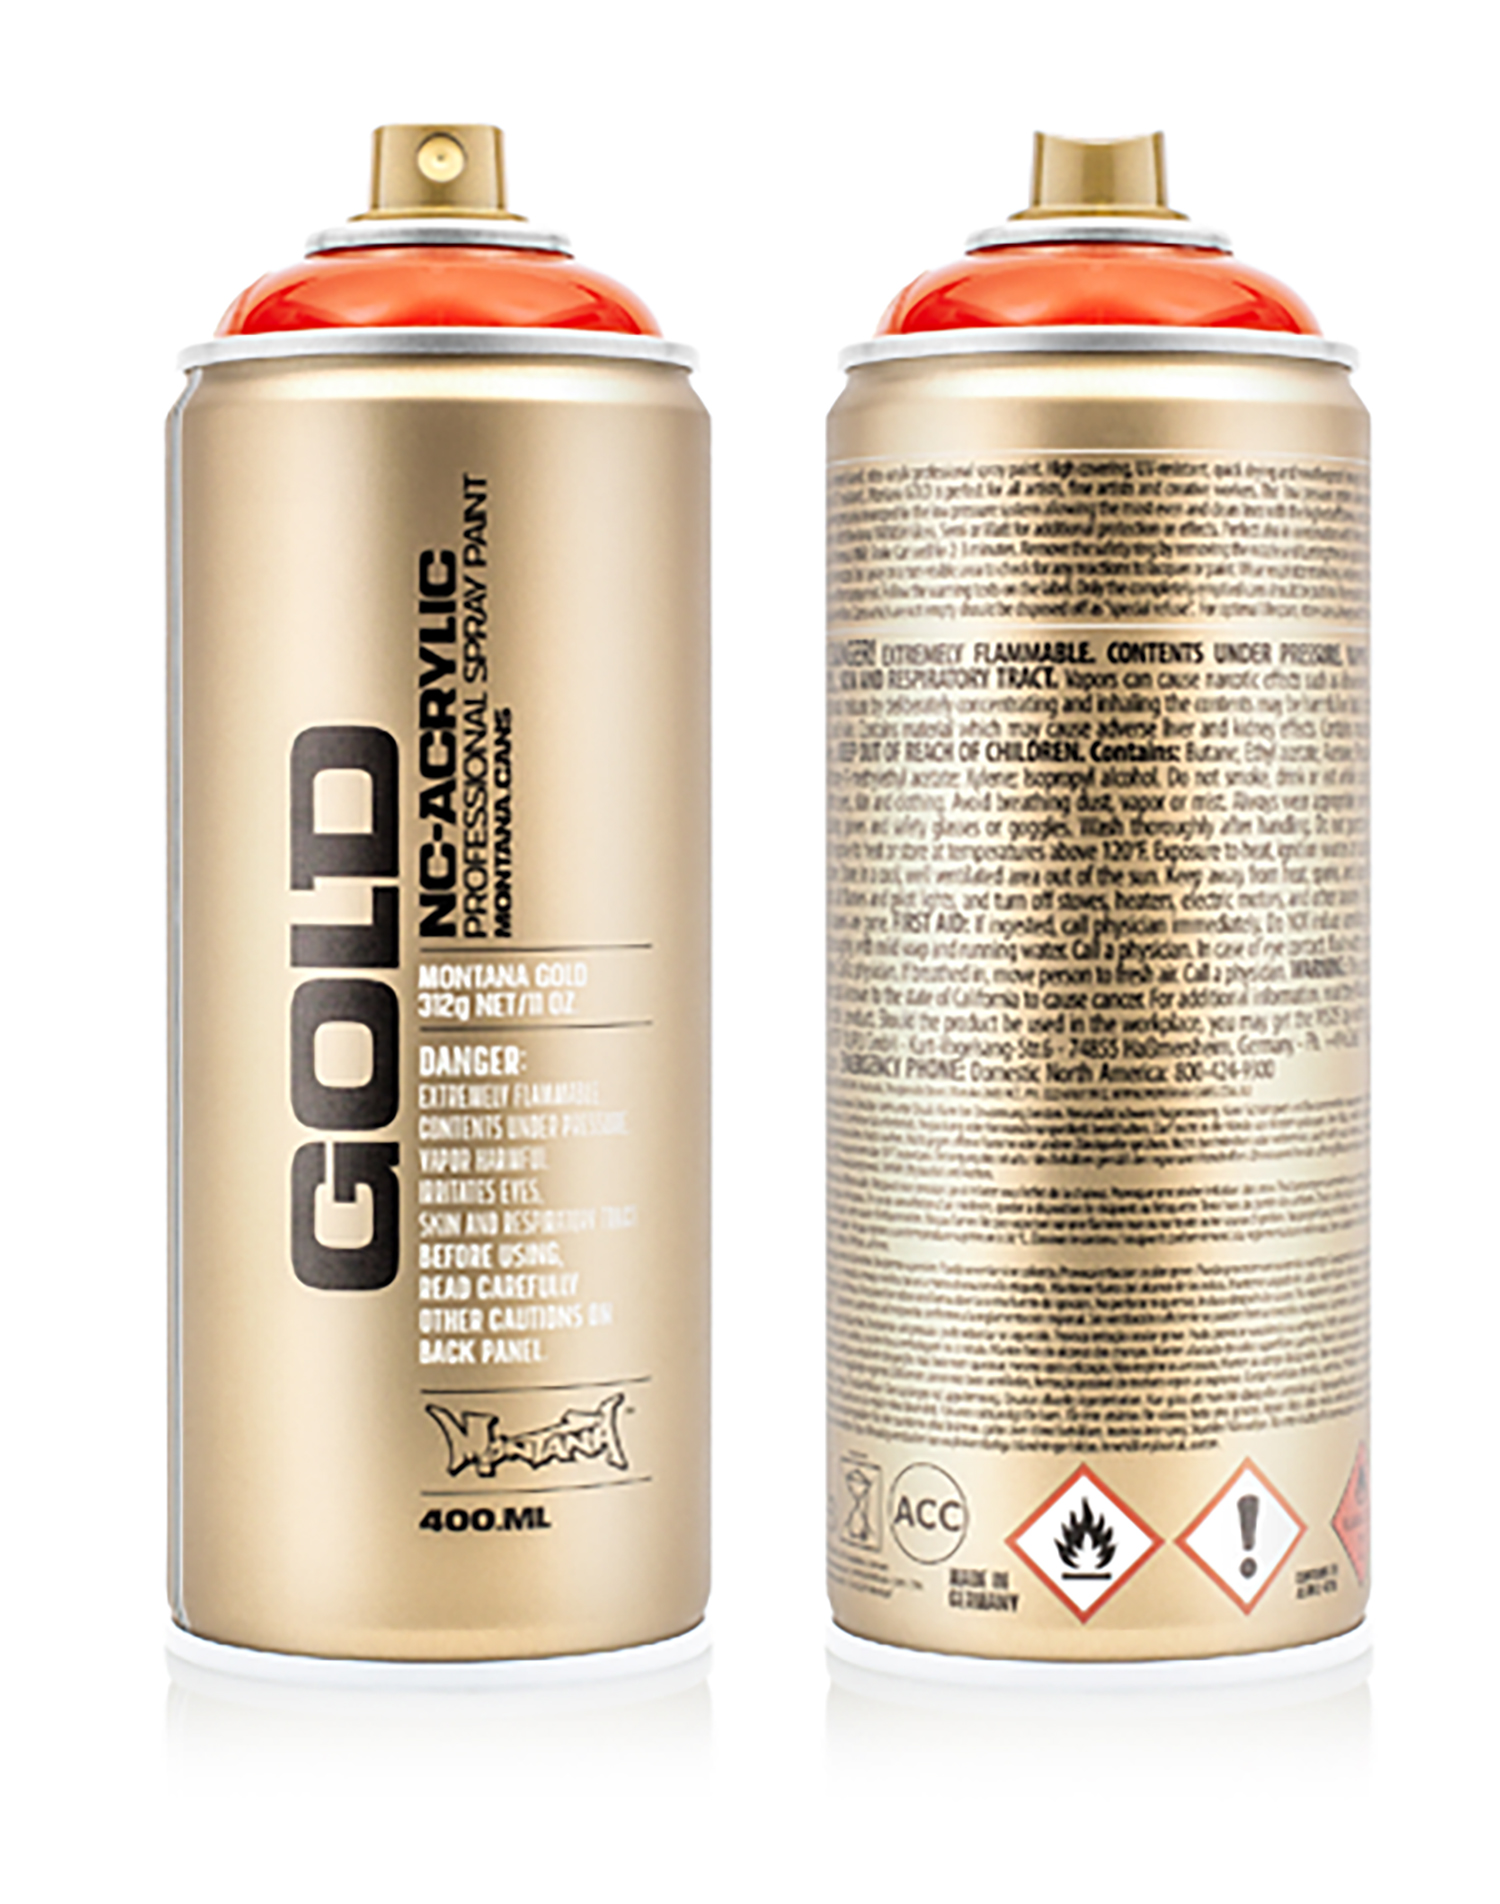 MONTANA-GOLD-SPRAY-400ML-T2090